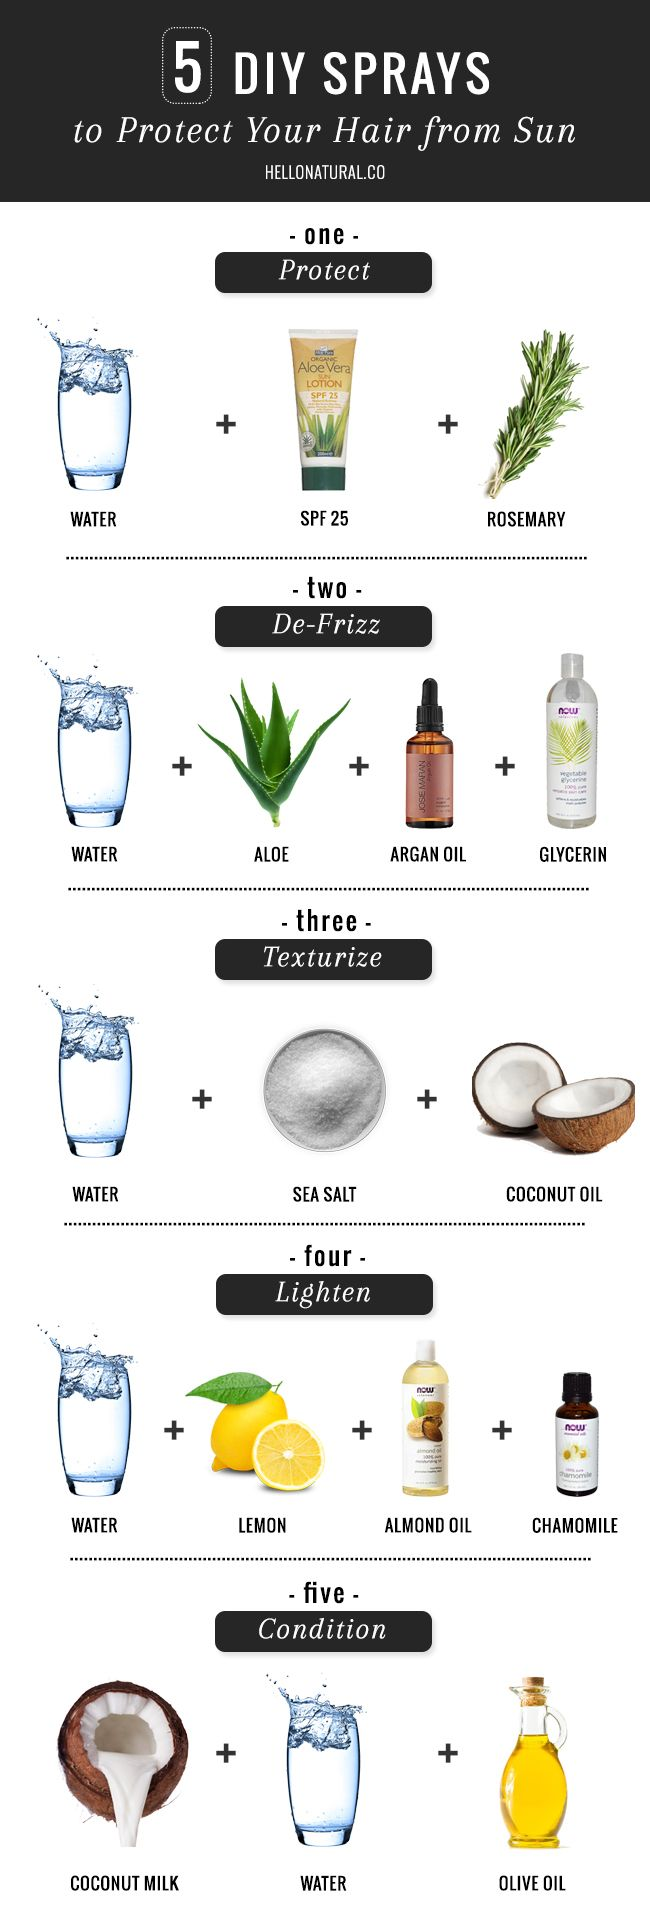 5 DIY Ways To Protect Your Hair from Sun, Heat   Humidity | http://helloglow.co/how-to-protect-your-hair-from-sun-heat-humidity-with-diy-sprays/